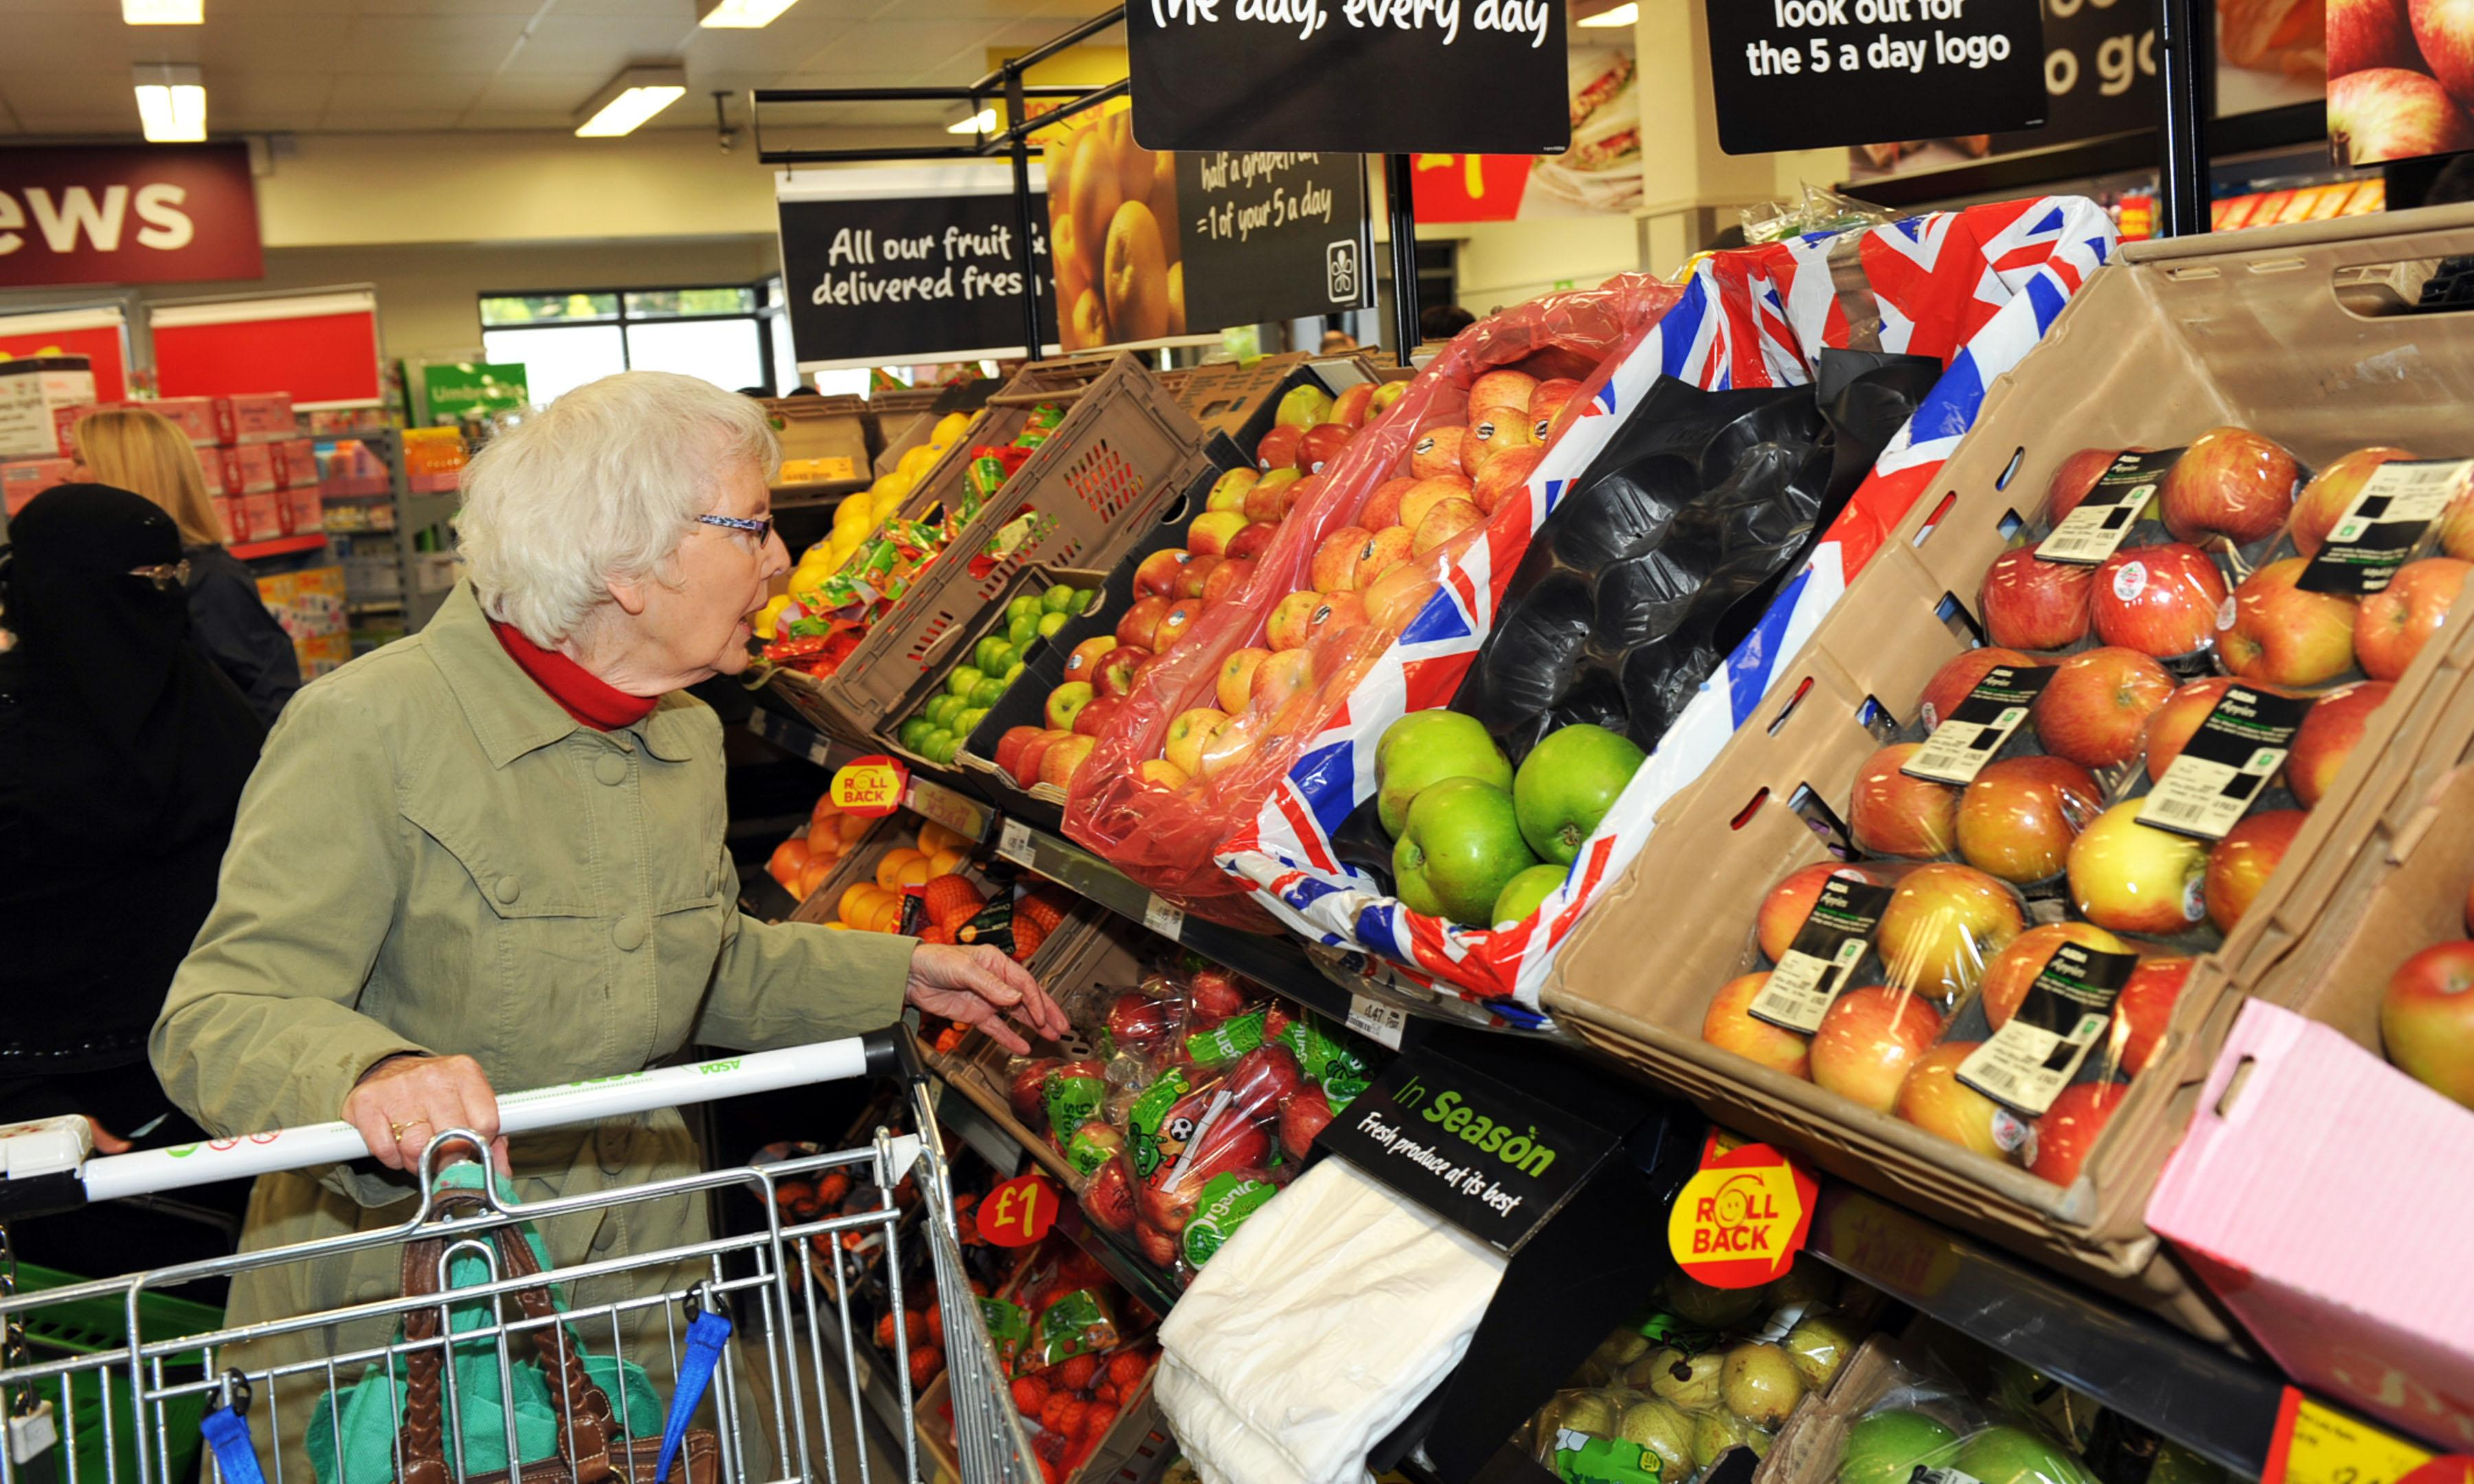 Tesco begins plastic-free trial for selection of fruit and veg